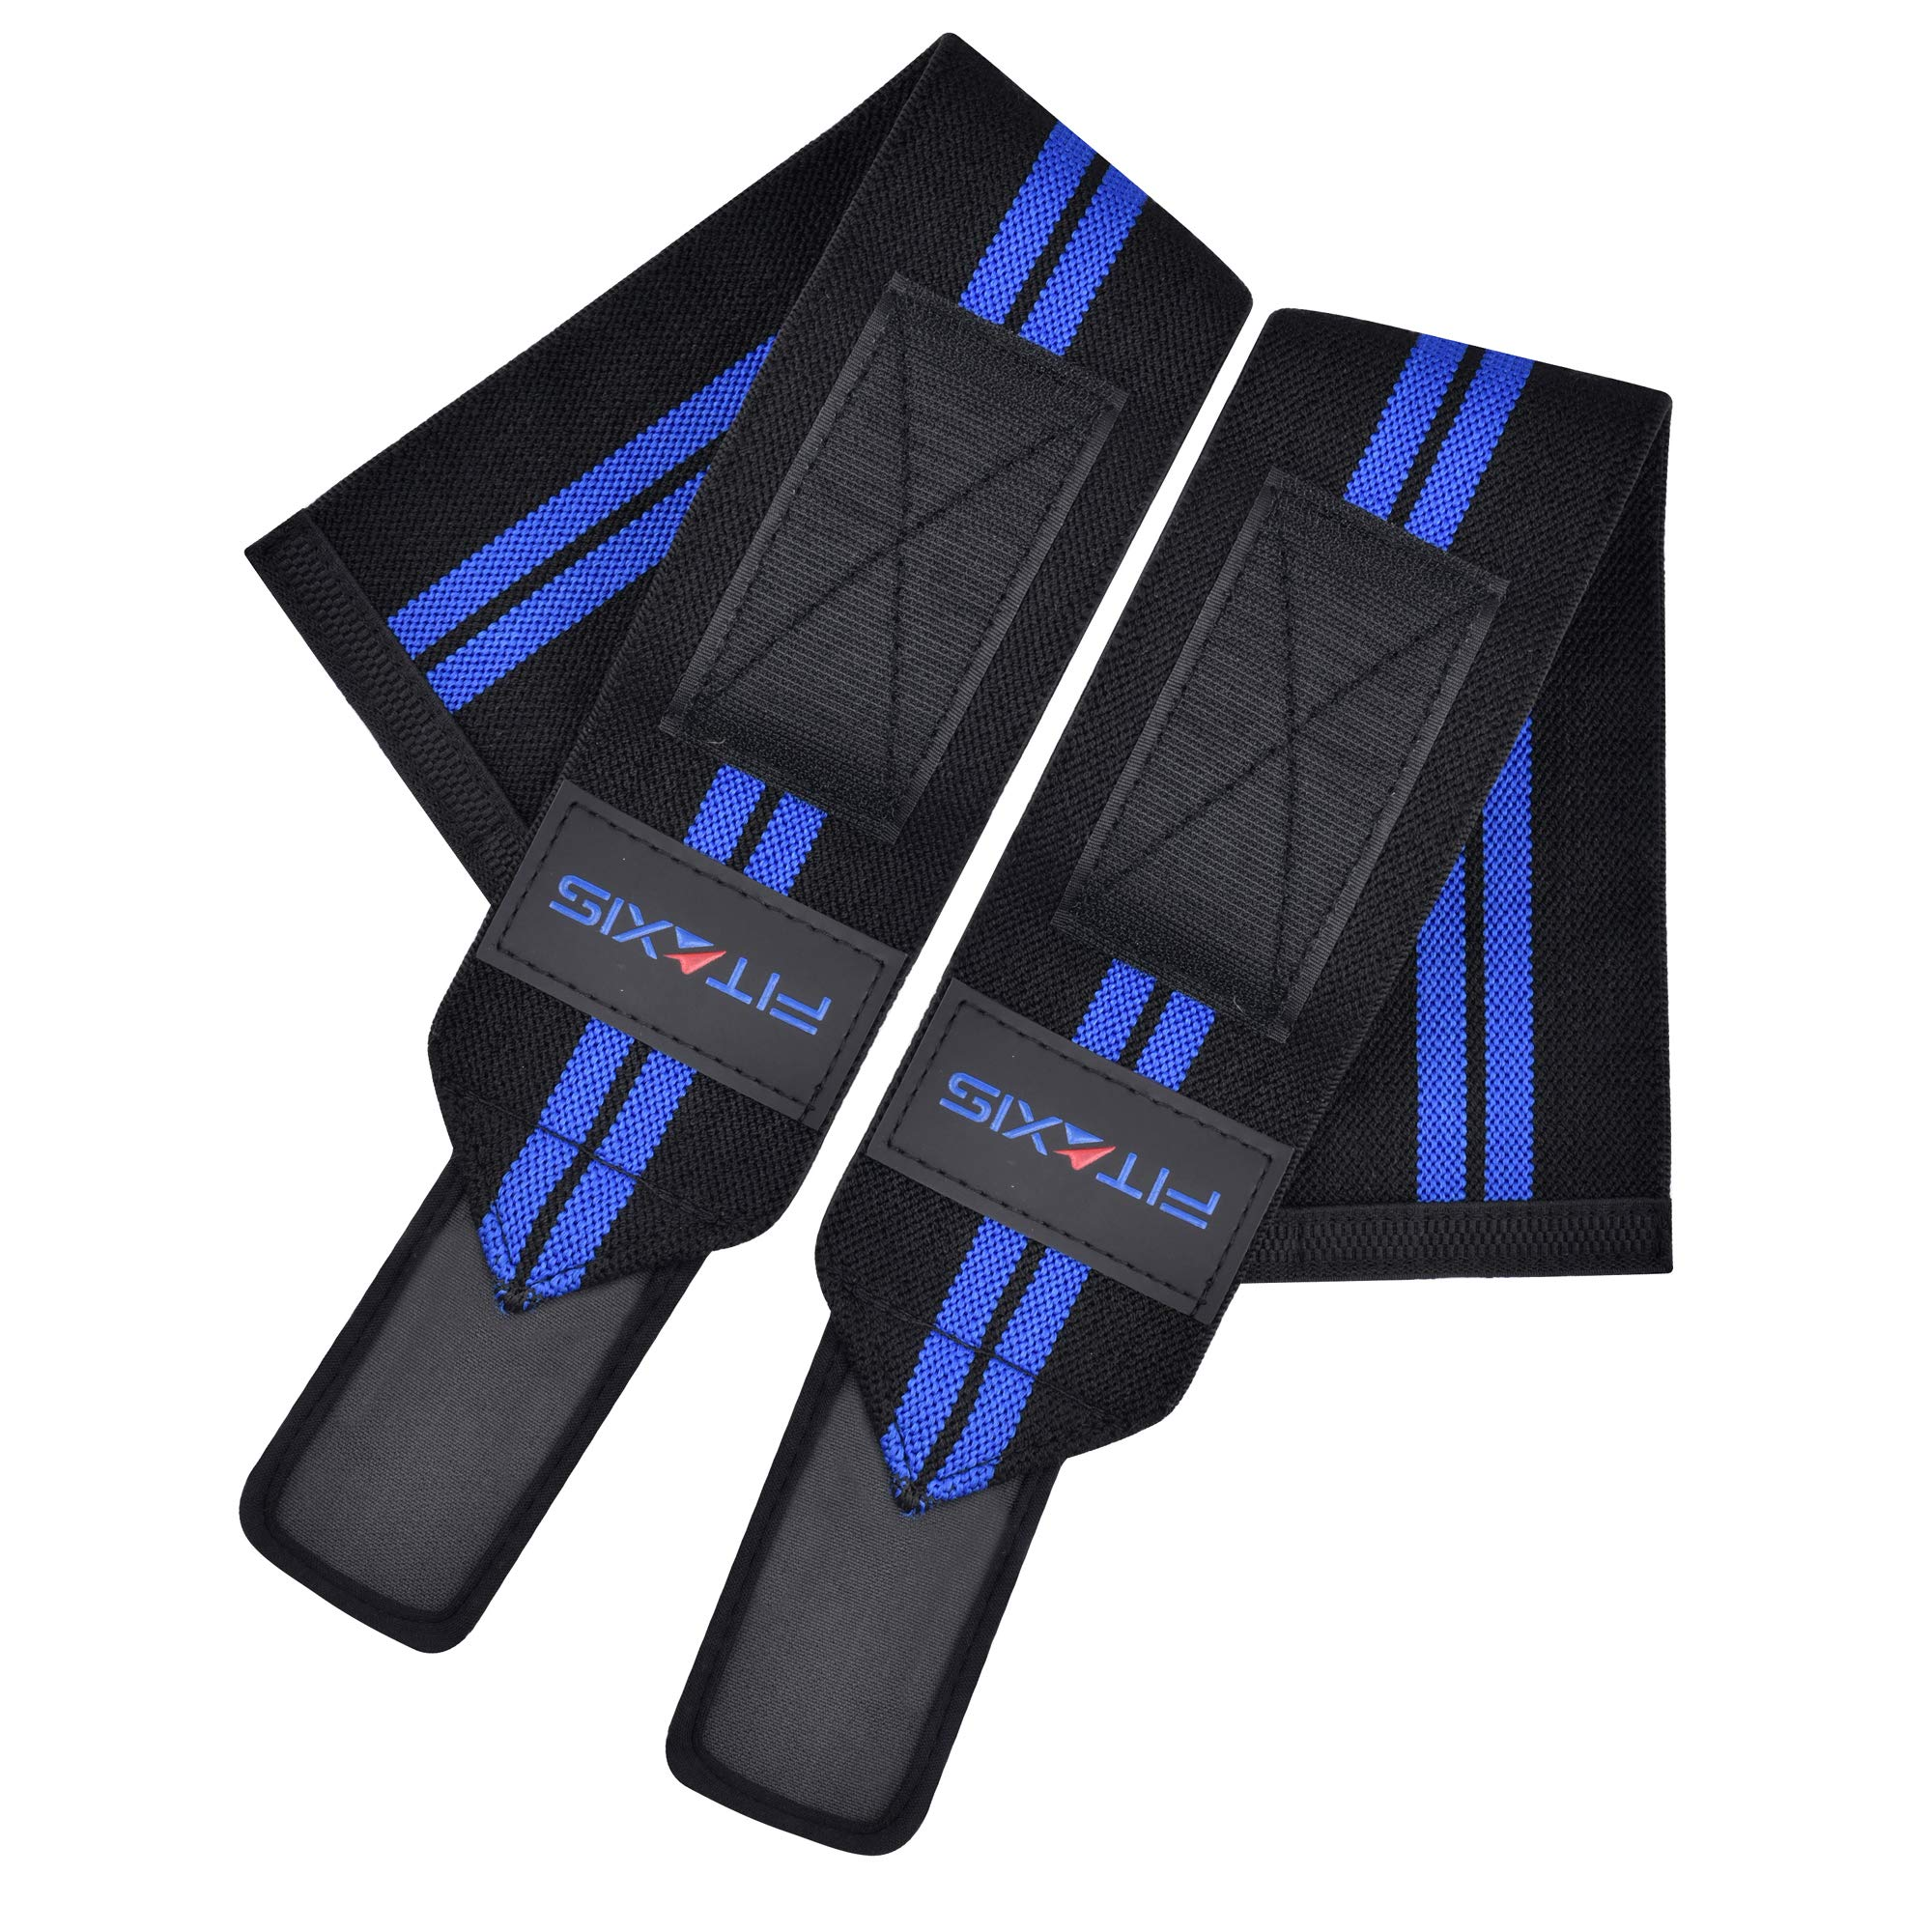 FITAXIS Muñequeras | Wrist Wraps/Bands for Gimnasio Fitness Crossfit Weightlifting para Hombres y Mujeres (Black/Blue, 18"|2000|2000|?|en|2|edcbfe435497971cb78f1dbf3beb87ec|False|UNLIKELY|0.2927263081073761